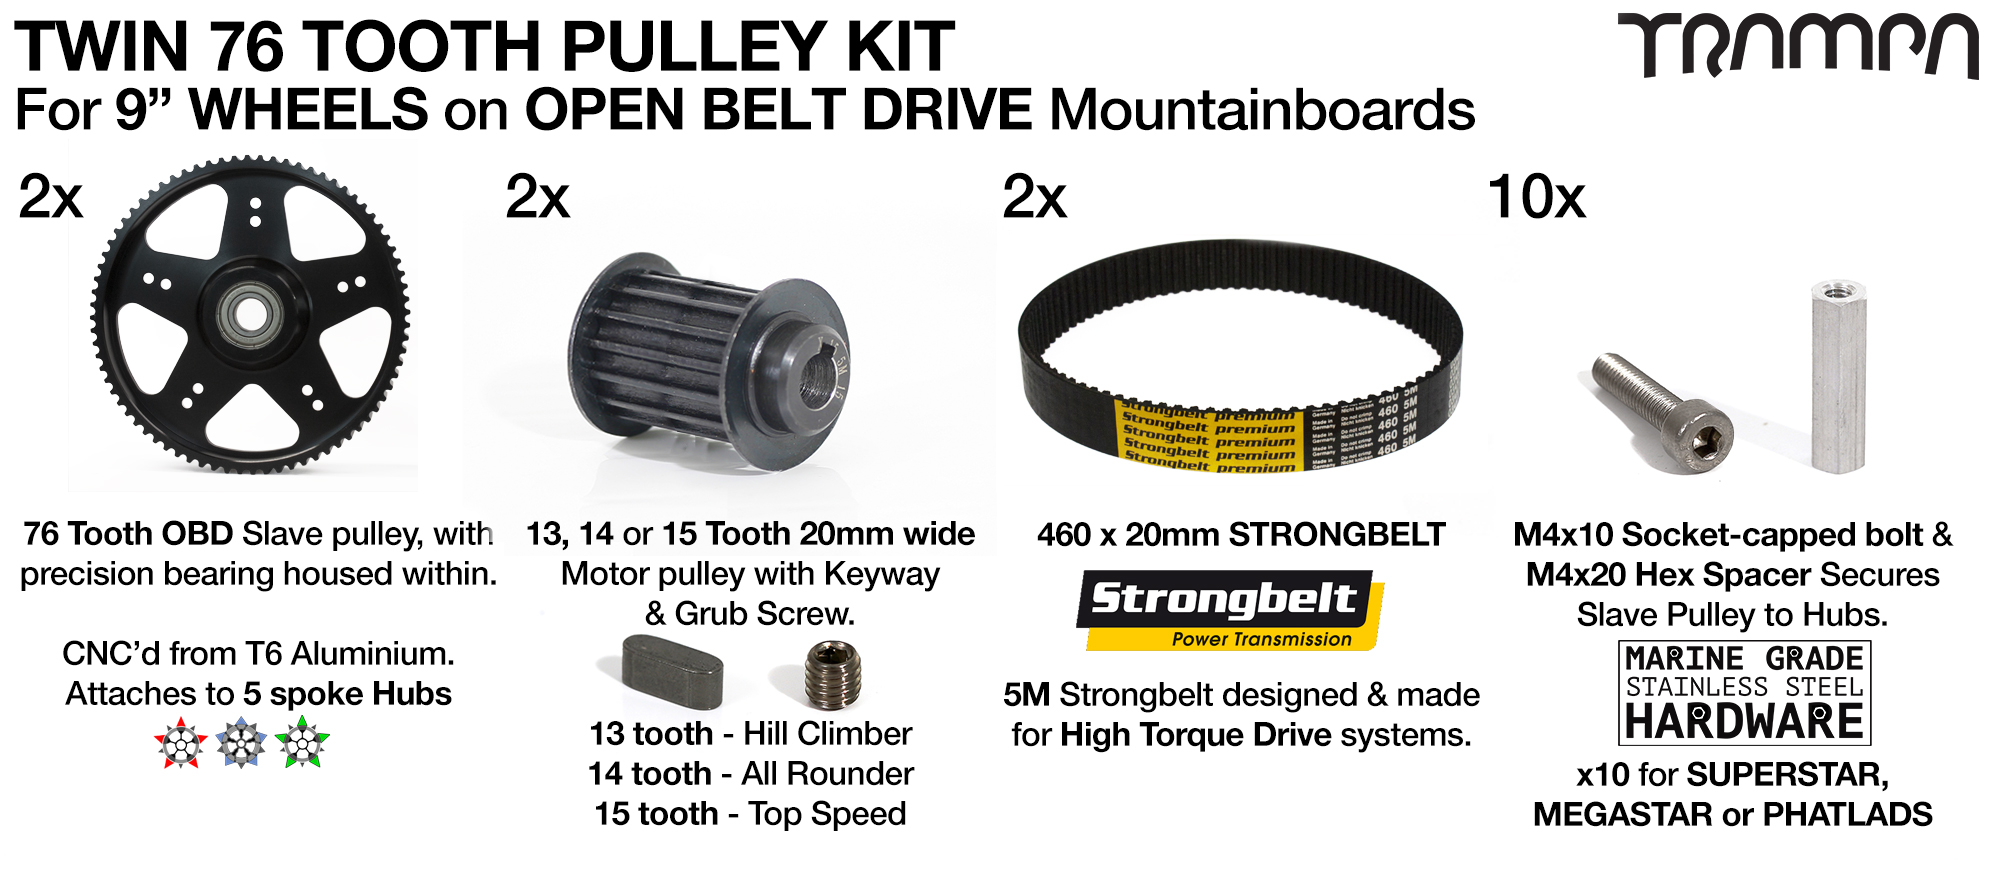 76T Open Belt Drive 76 Tooth Pulley Kit with 460mm x 20mm Belt for 9 Inch Wheels HIGH TORQUE - TWIN